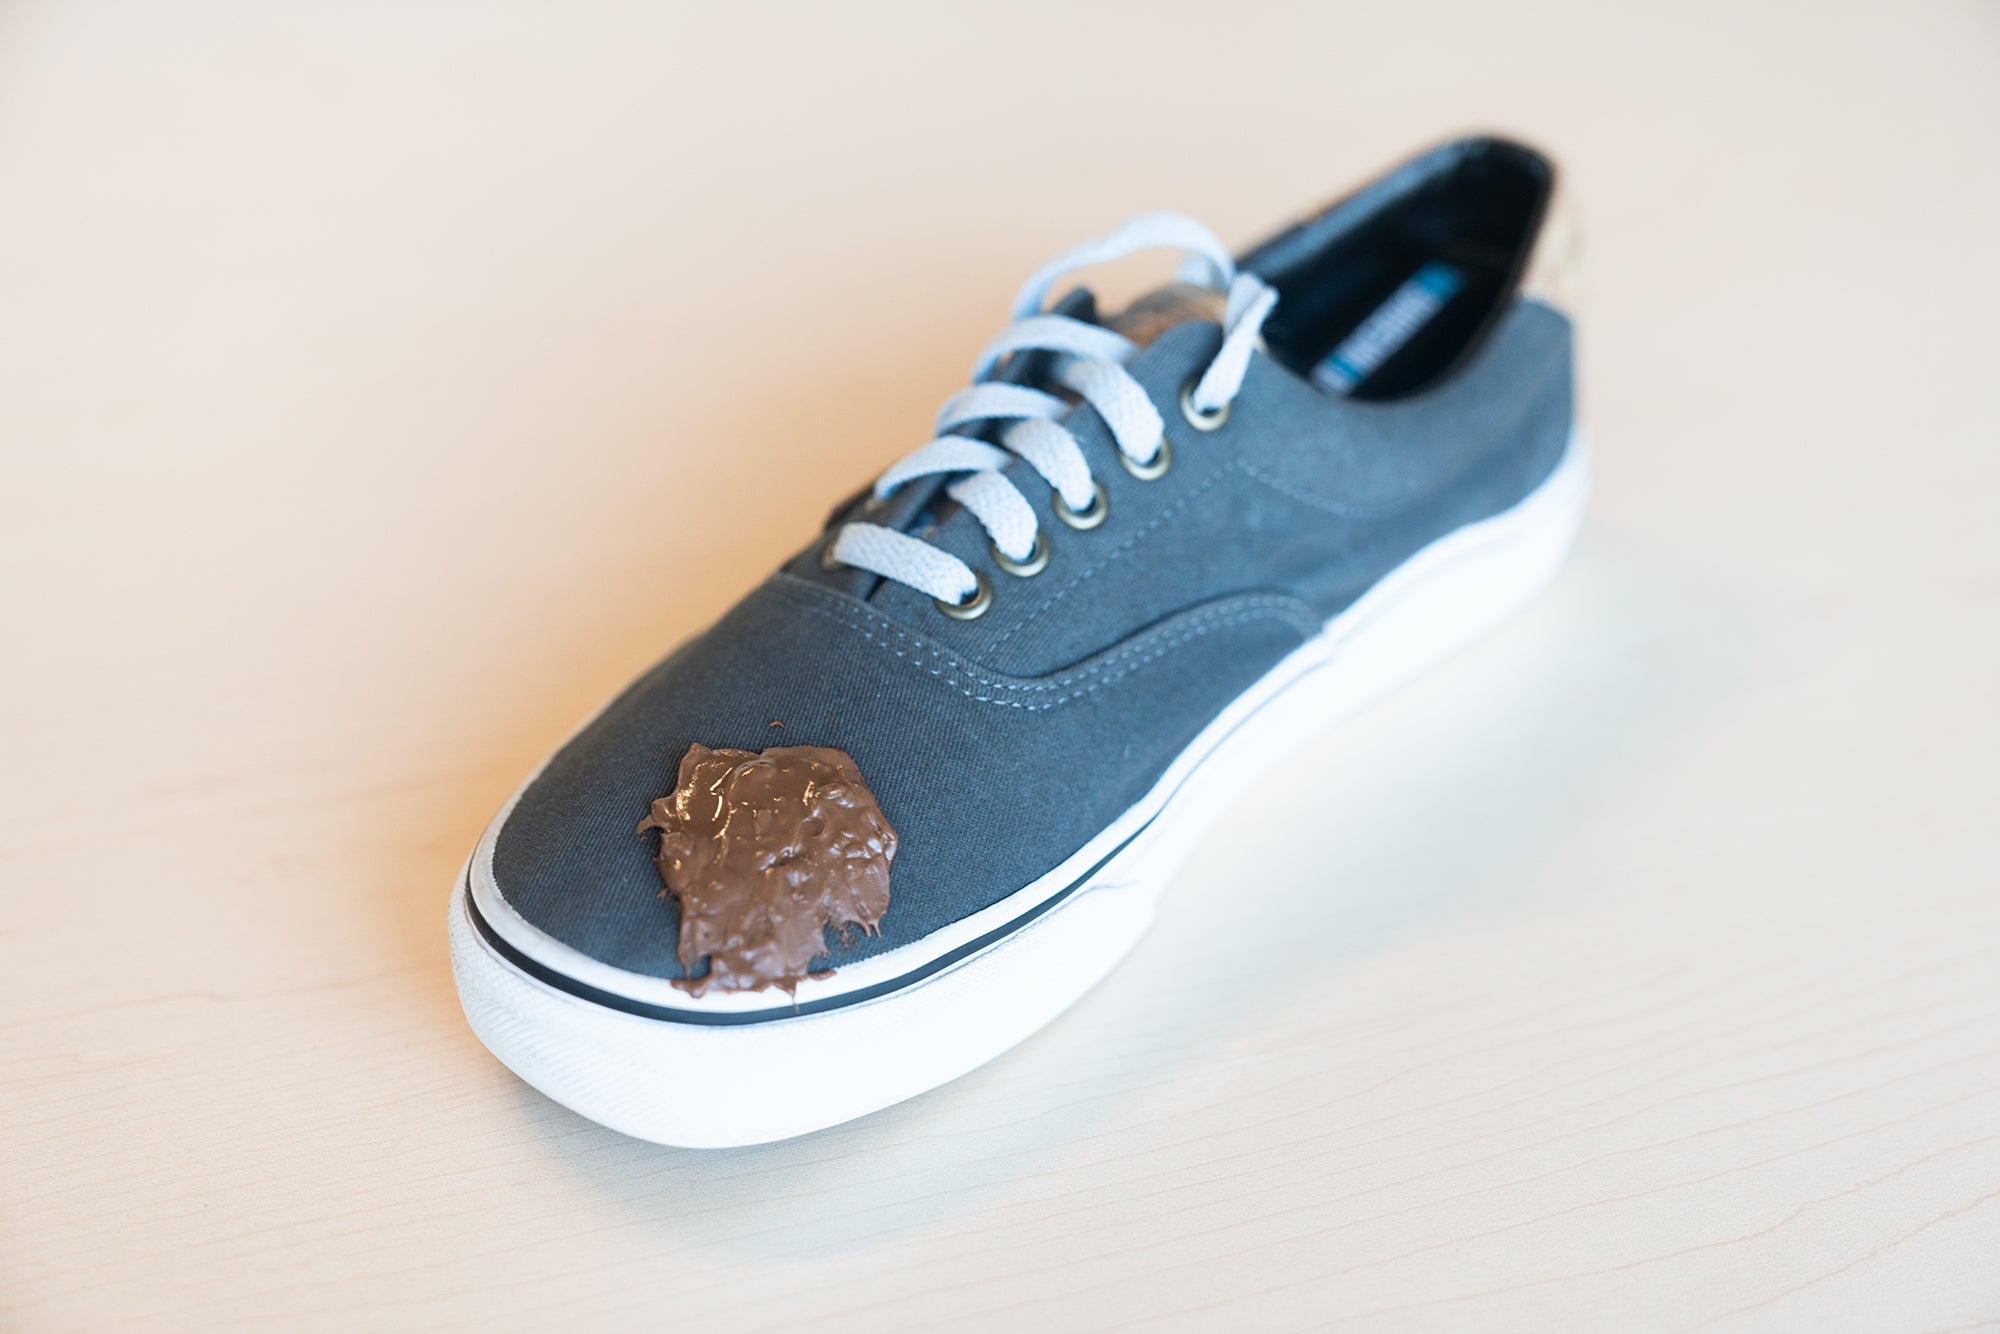 How to Remove Chocolate Stains on Canvas Vans